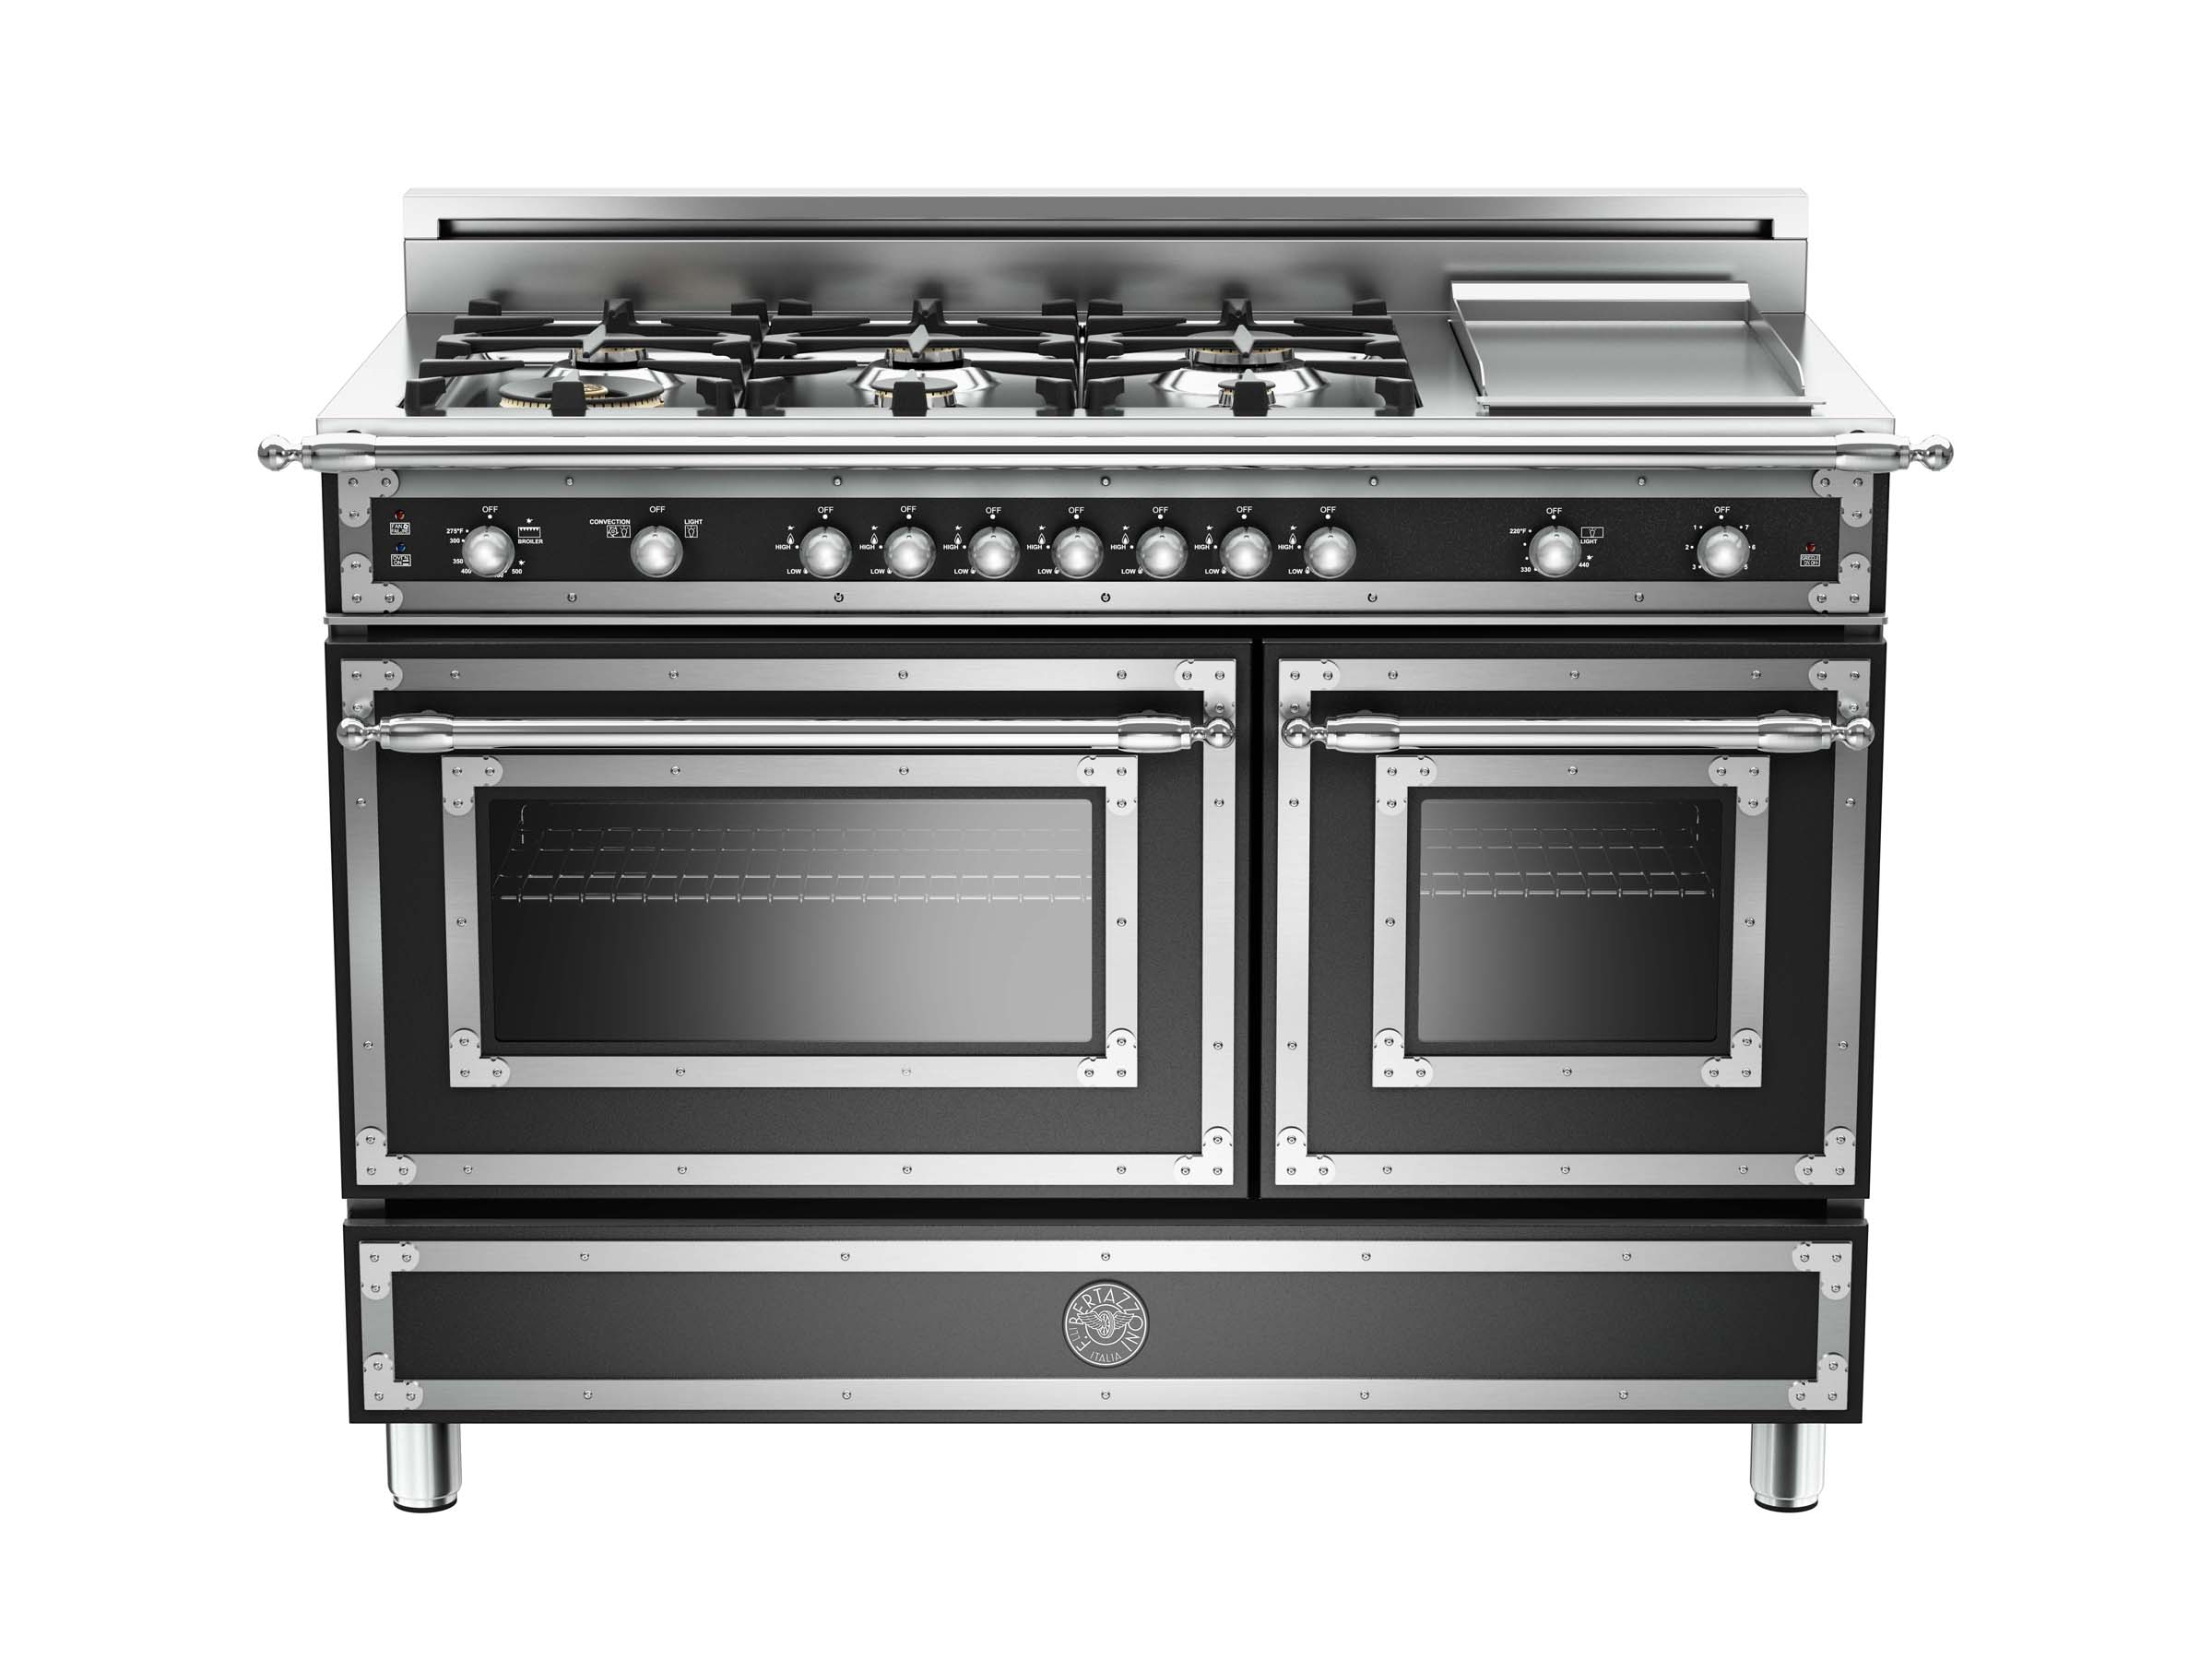 48 6-Burner + Griddle, Gas Double Oven | Bertazzoni - Matt Black